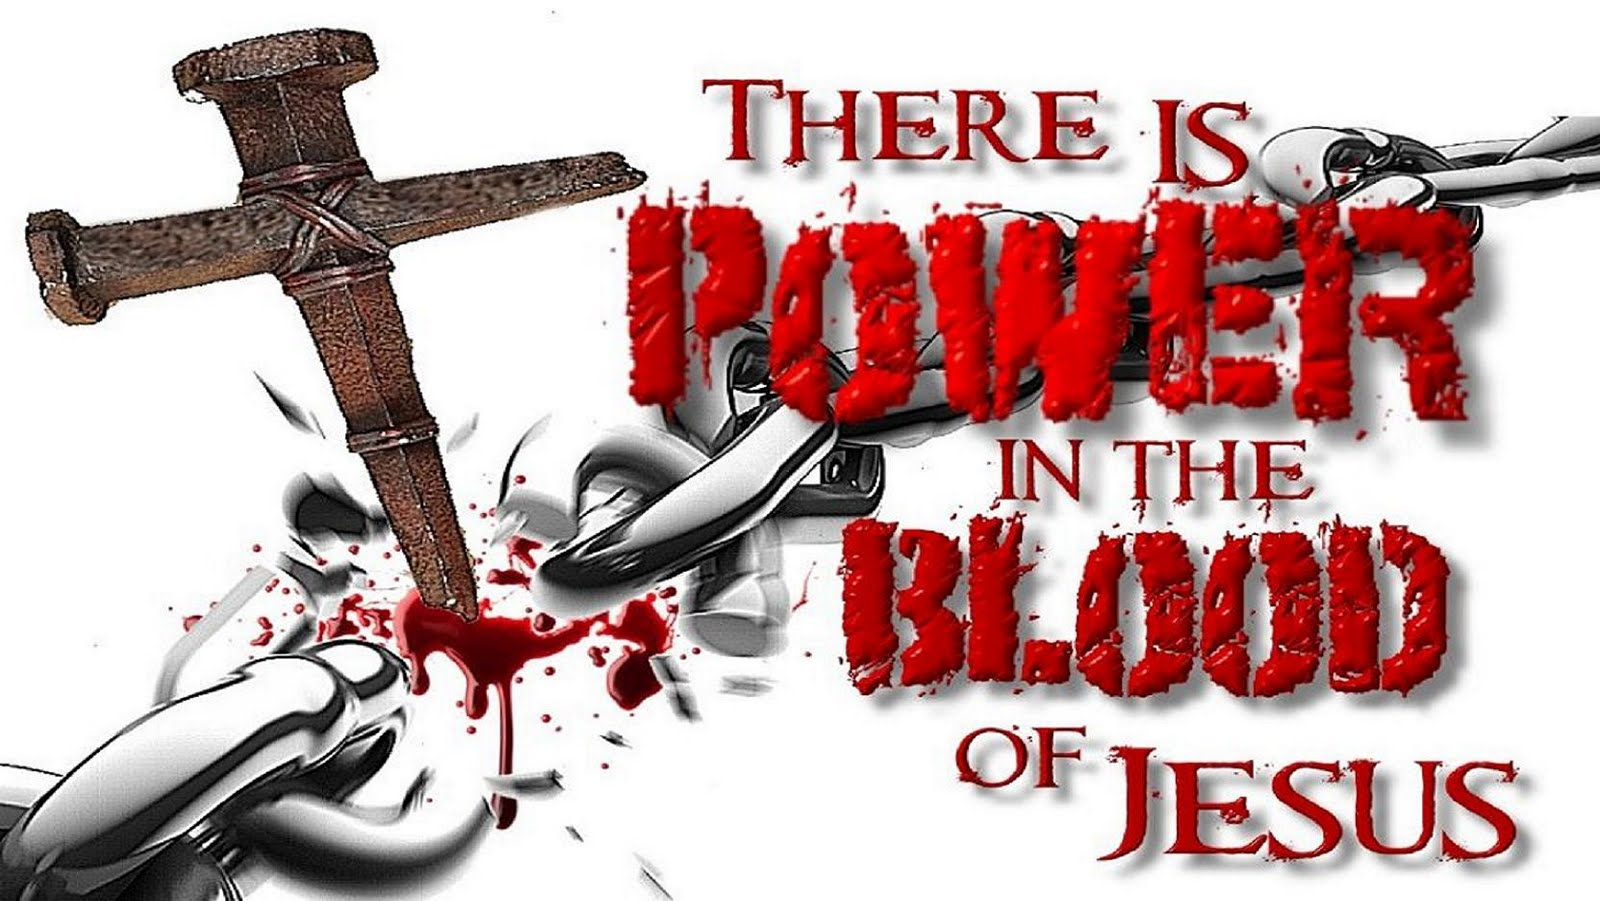 There is power in His blood